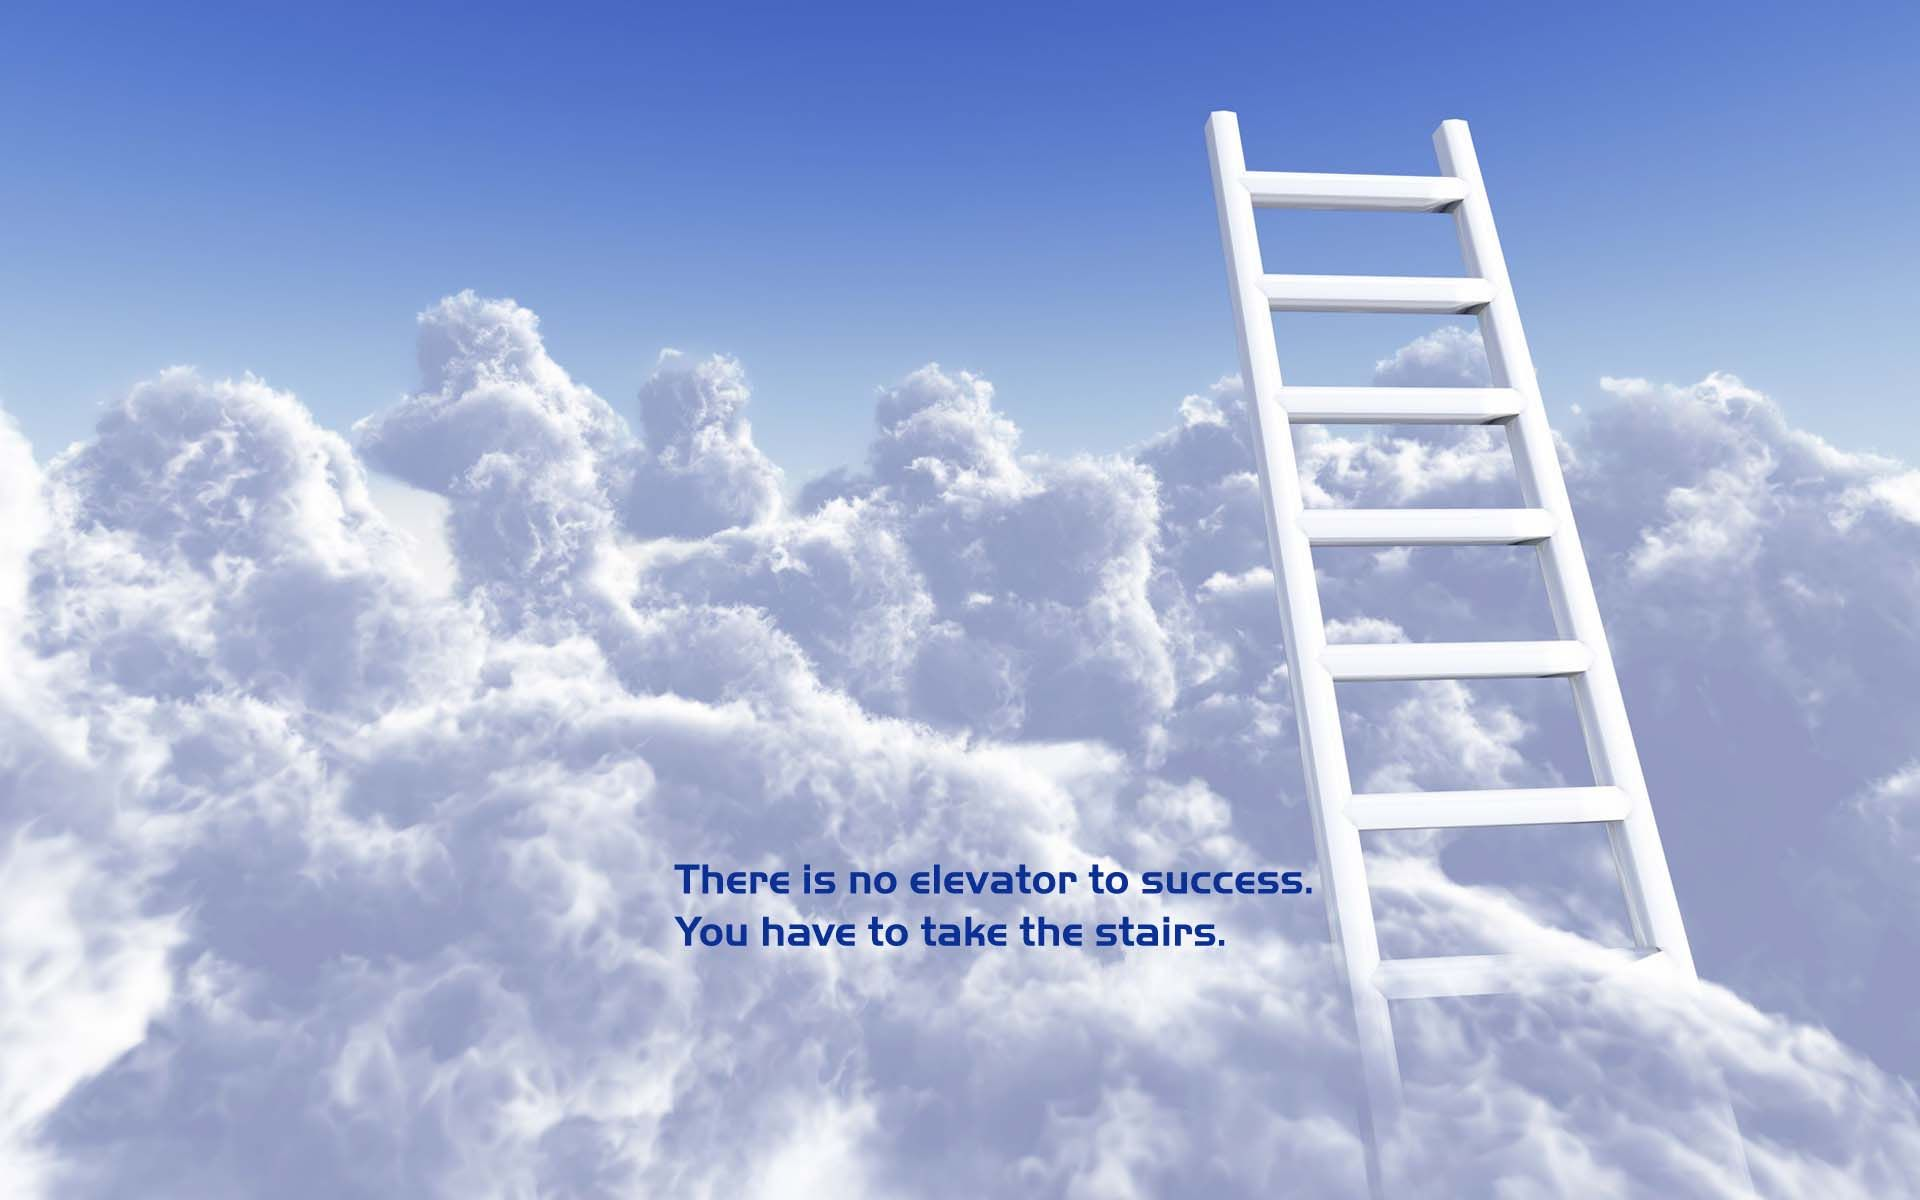 There Is No Elevator To Success Wallpaper Wallpaper 1920x1200 Download Hd Wallpaper Wallpapertip